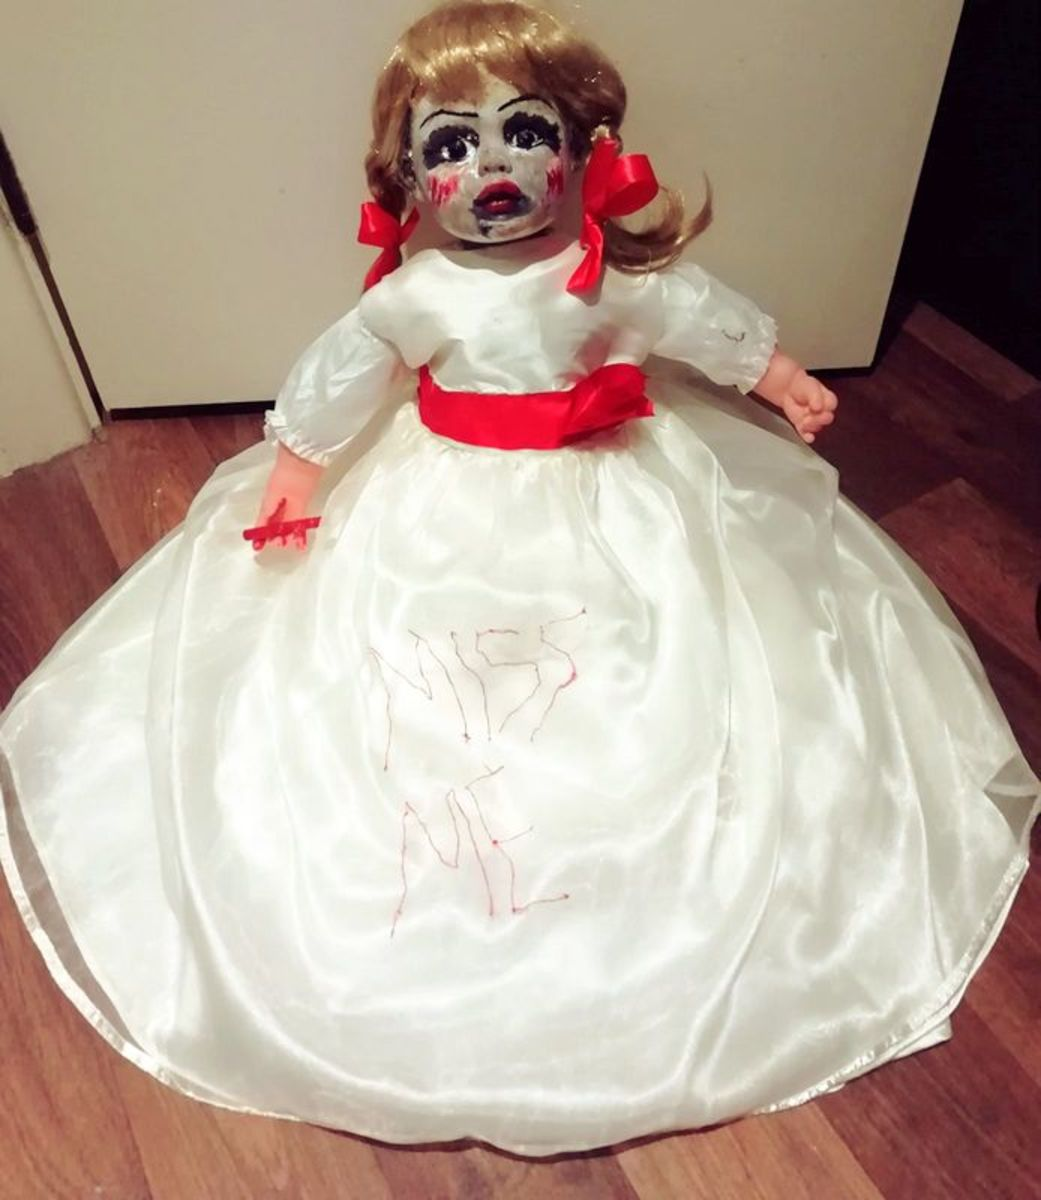 How to Make an Annabelle Doll From the Movie